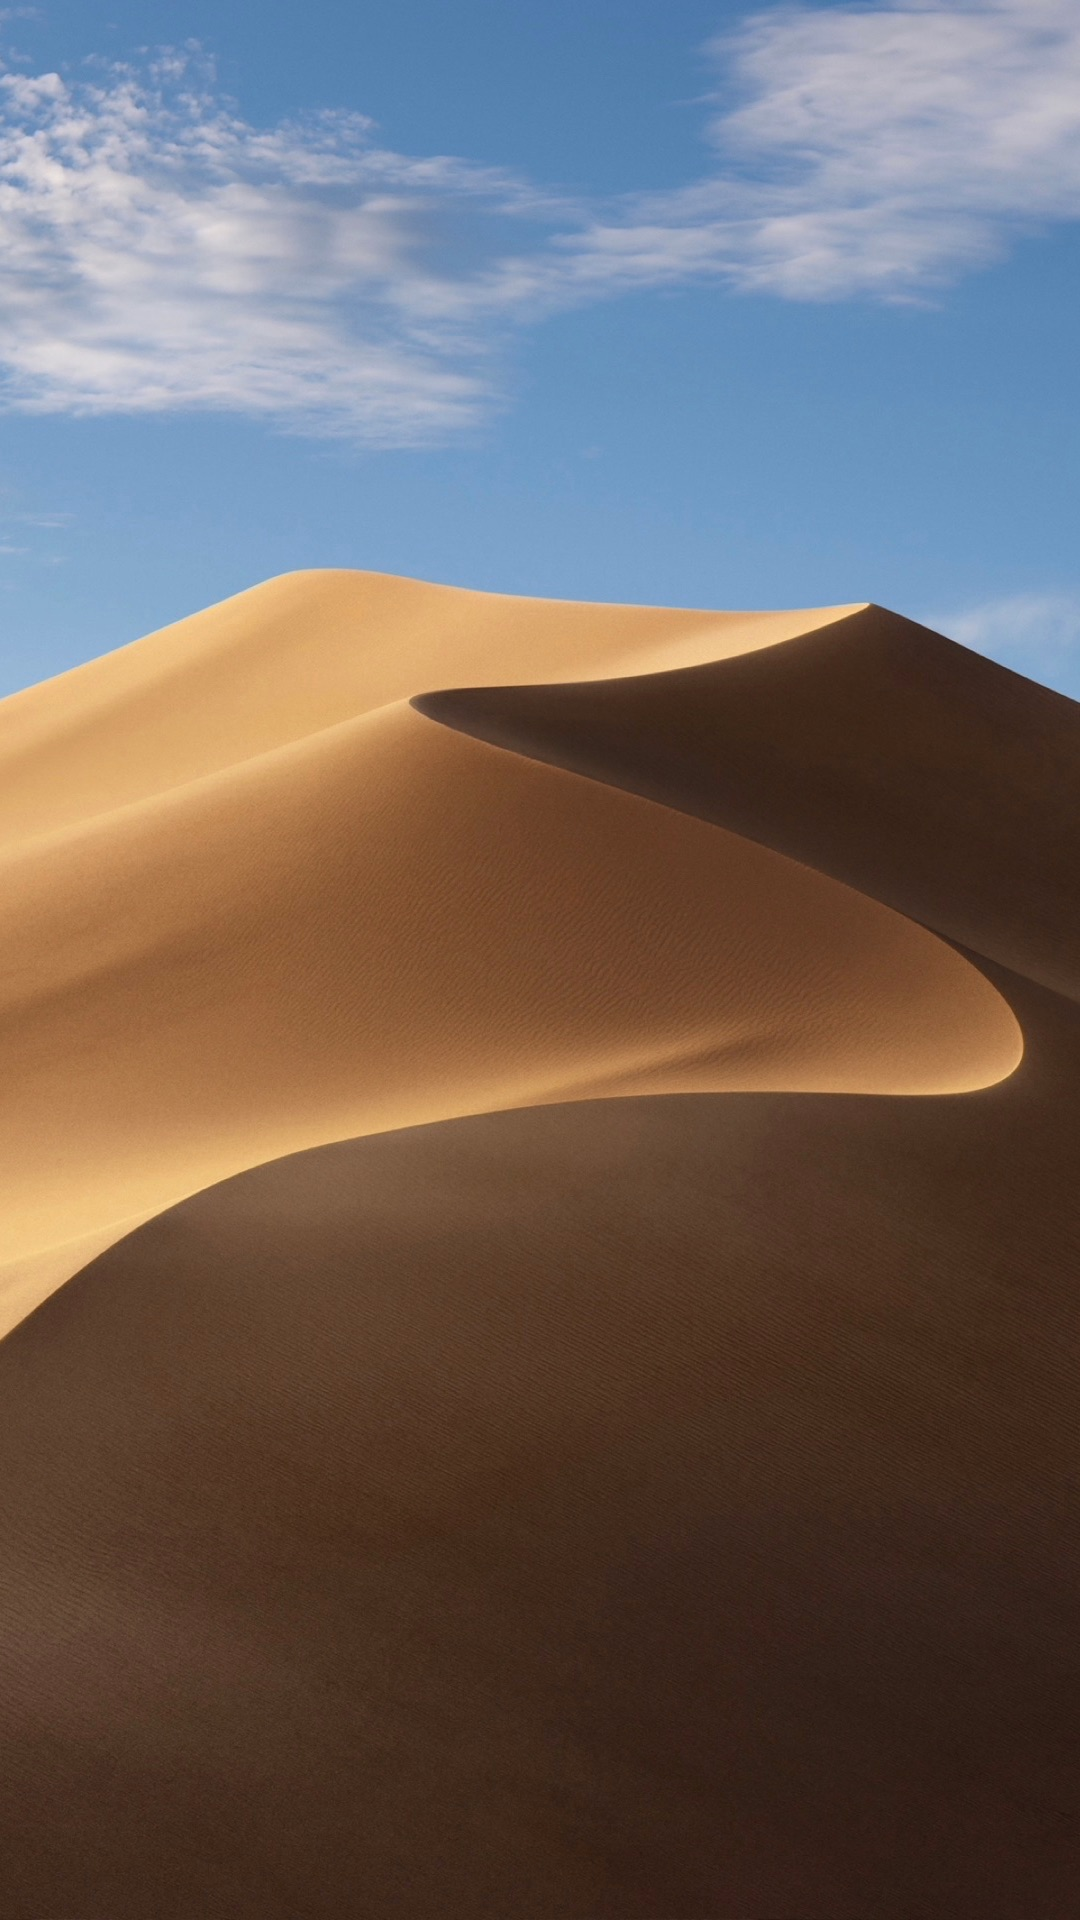 Wallpaper Weekends: macOS Mojave Wallpapers for iPhone, iPad